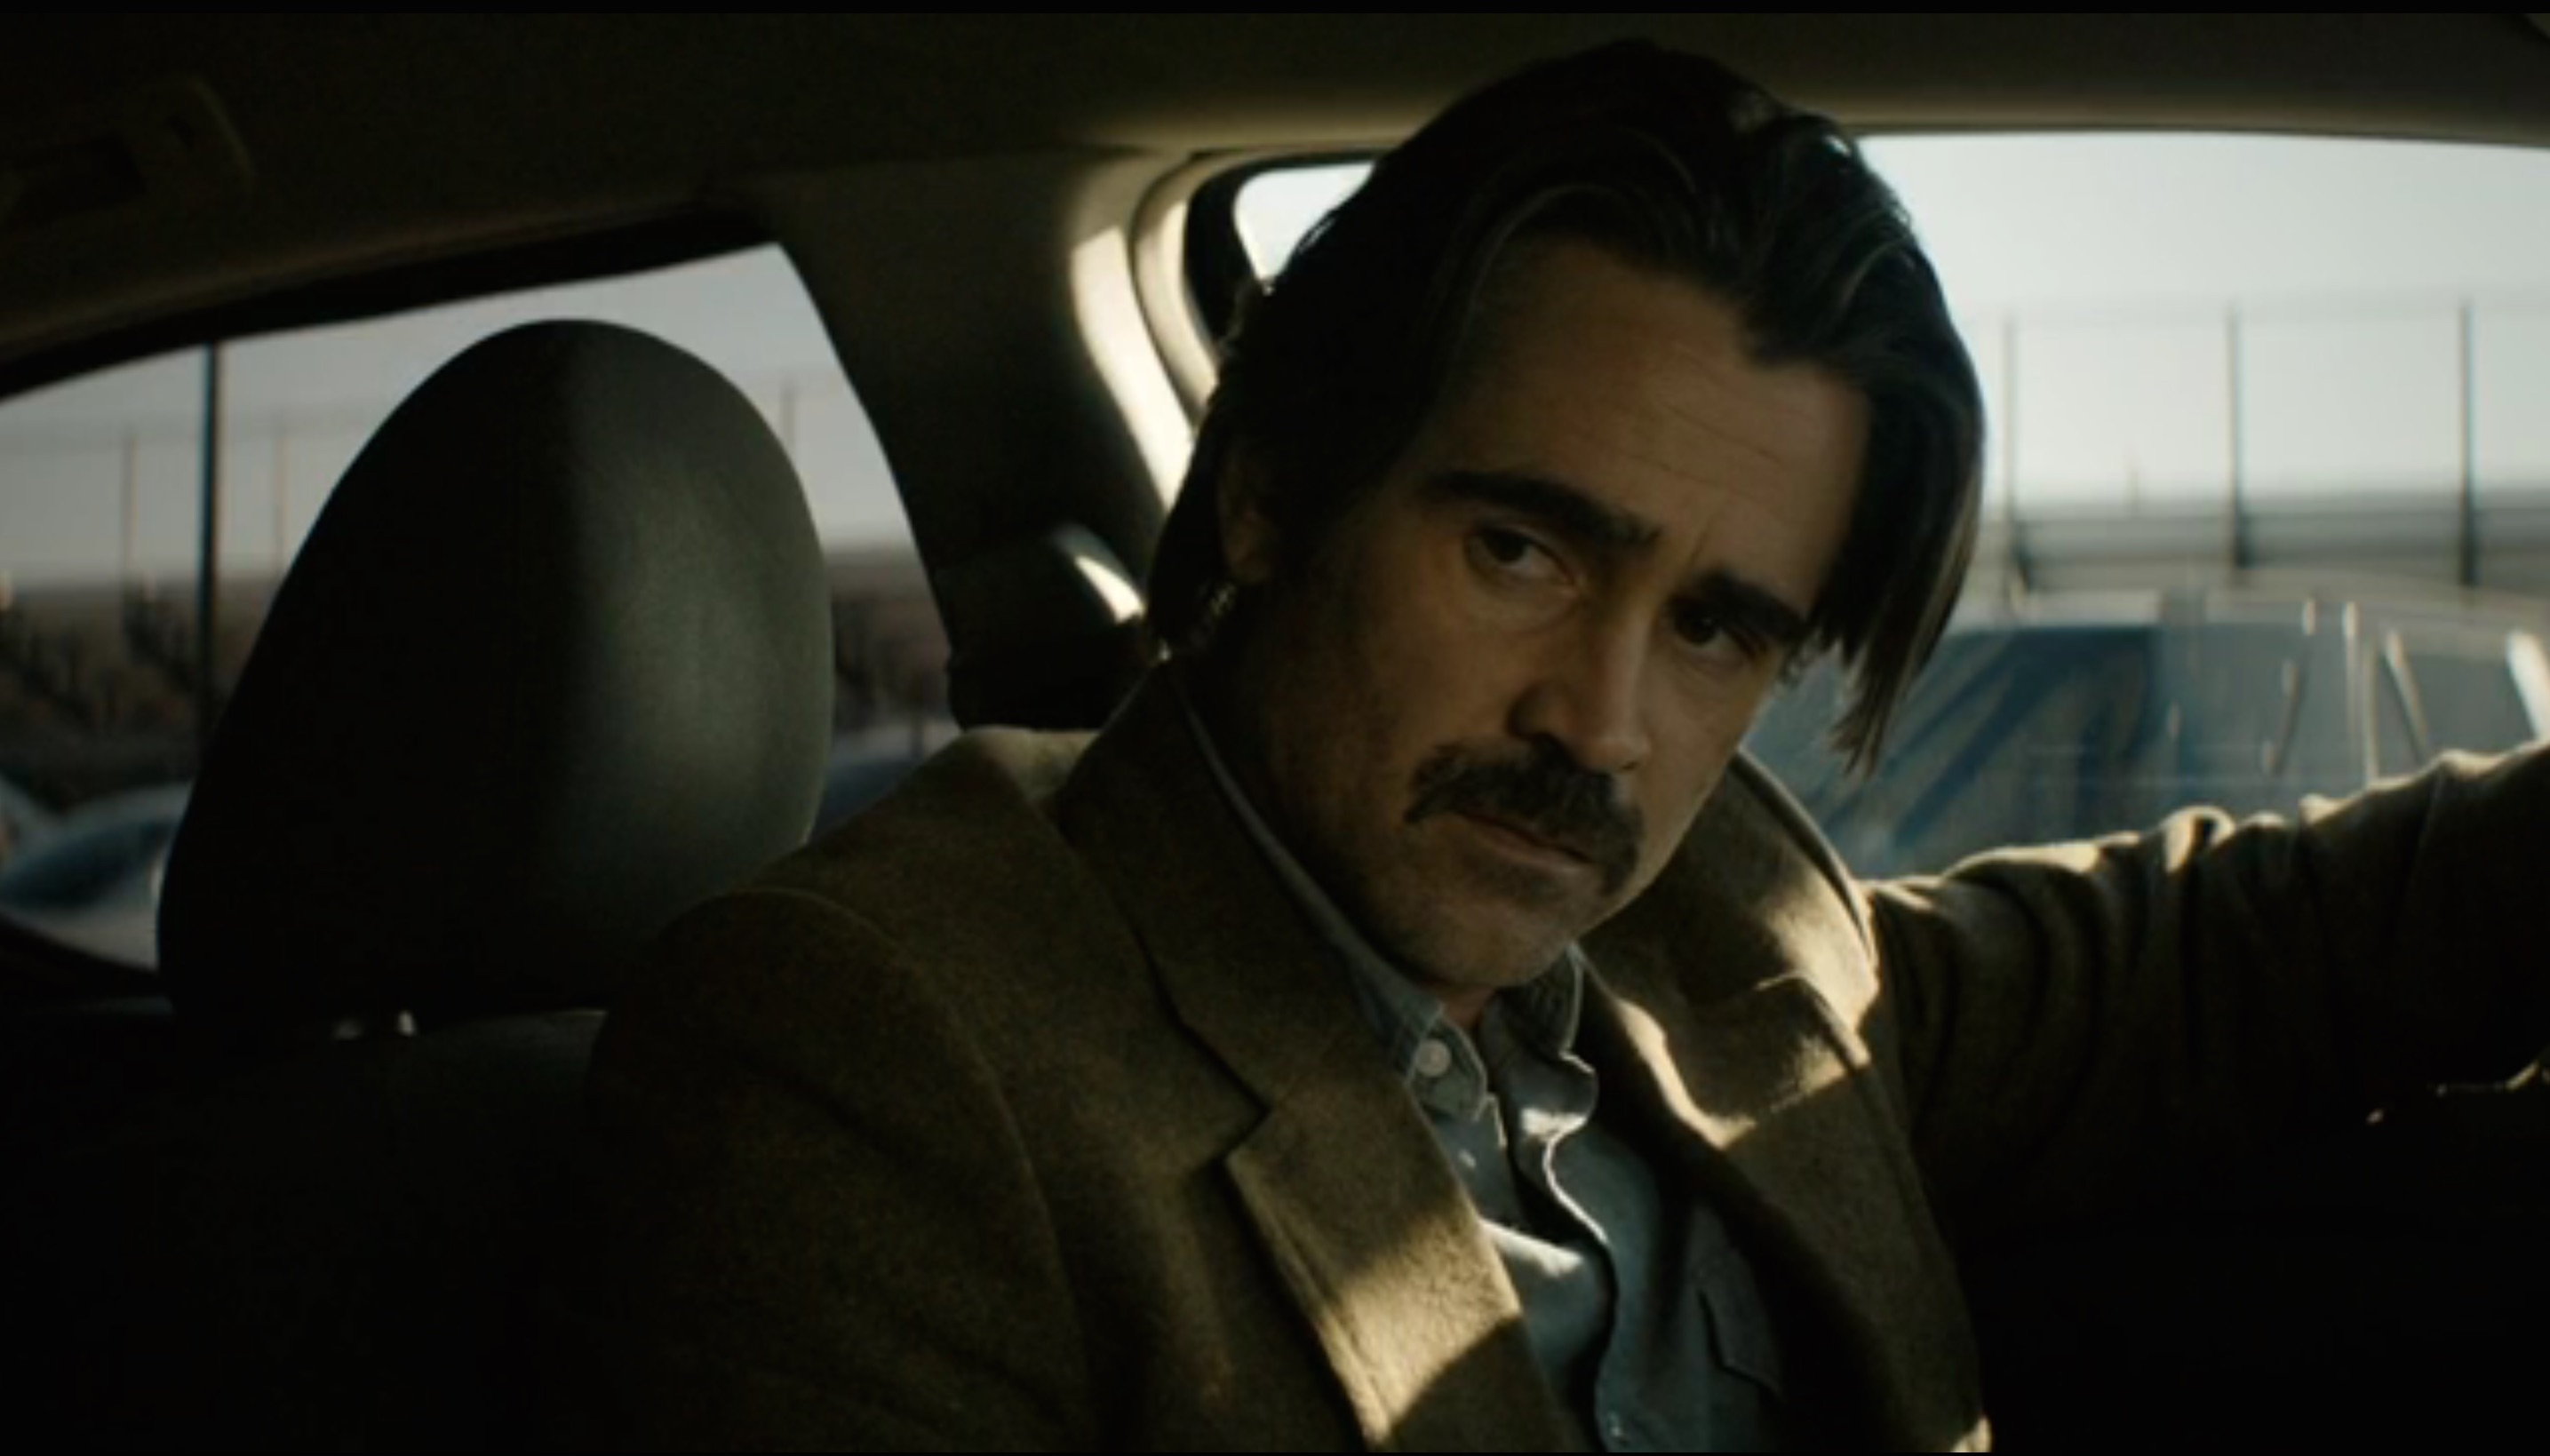 Let's start over with True Detective's confusing season 2 opener